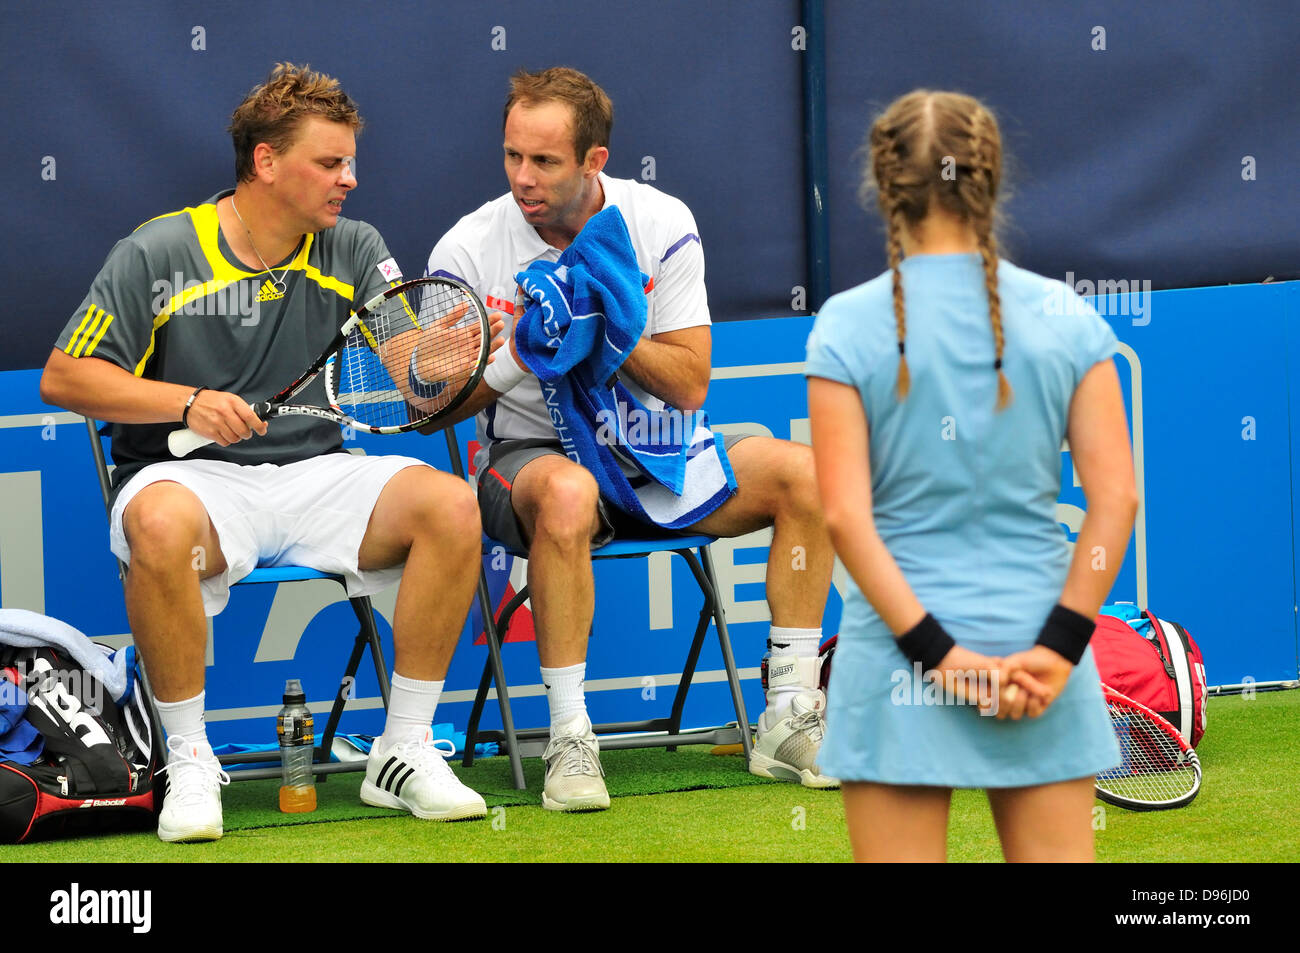 Paul Hanley (Australia) and Marcin Matkowski (Poland) in a doubles match at the Aegon Tennis Championship, Queens - Stock Image